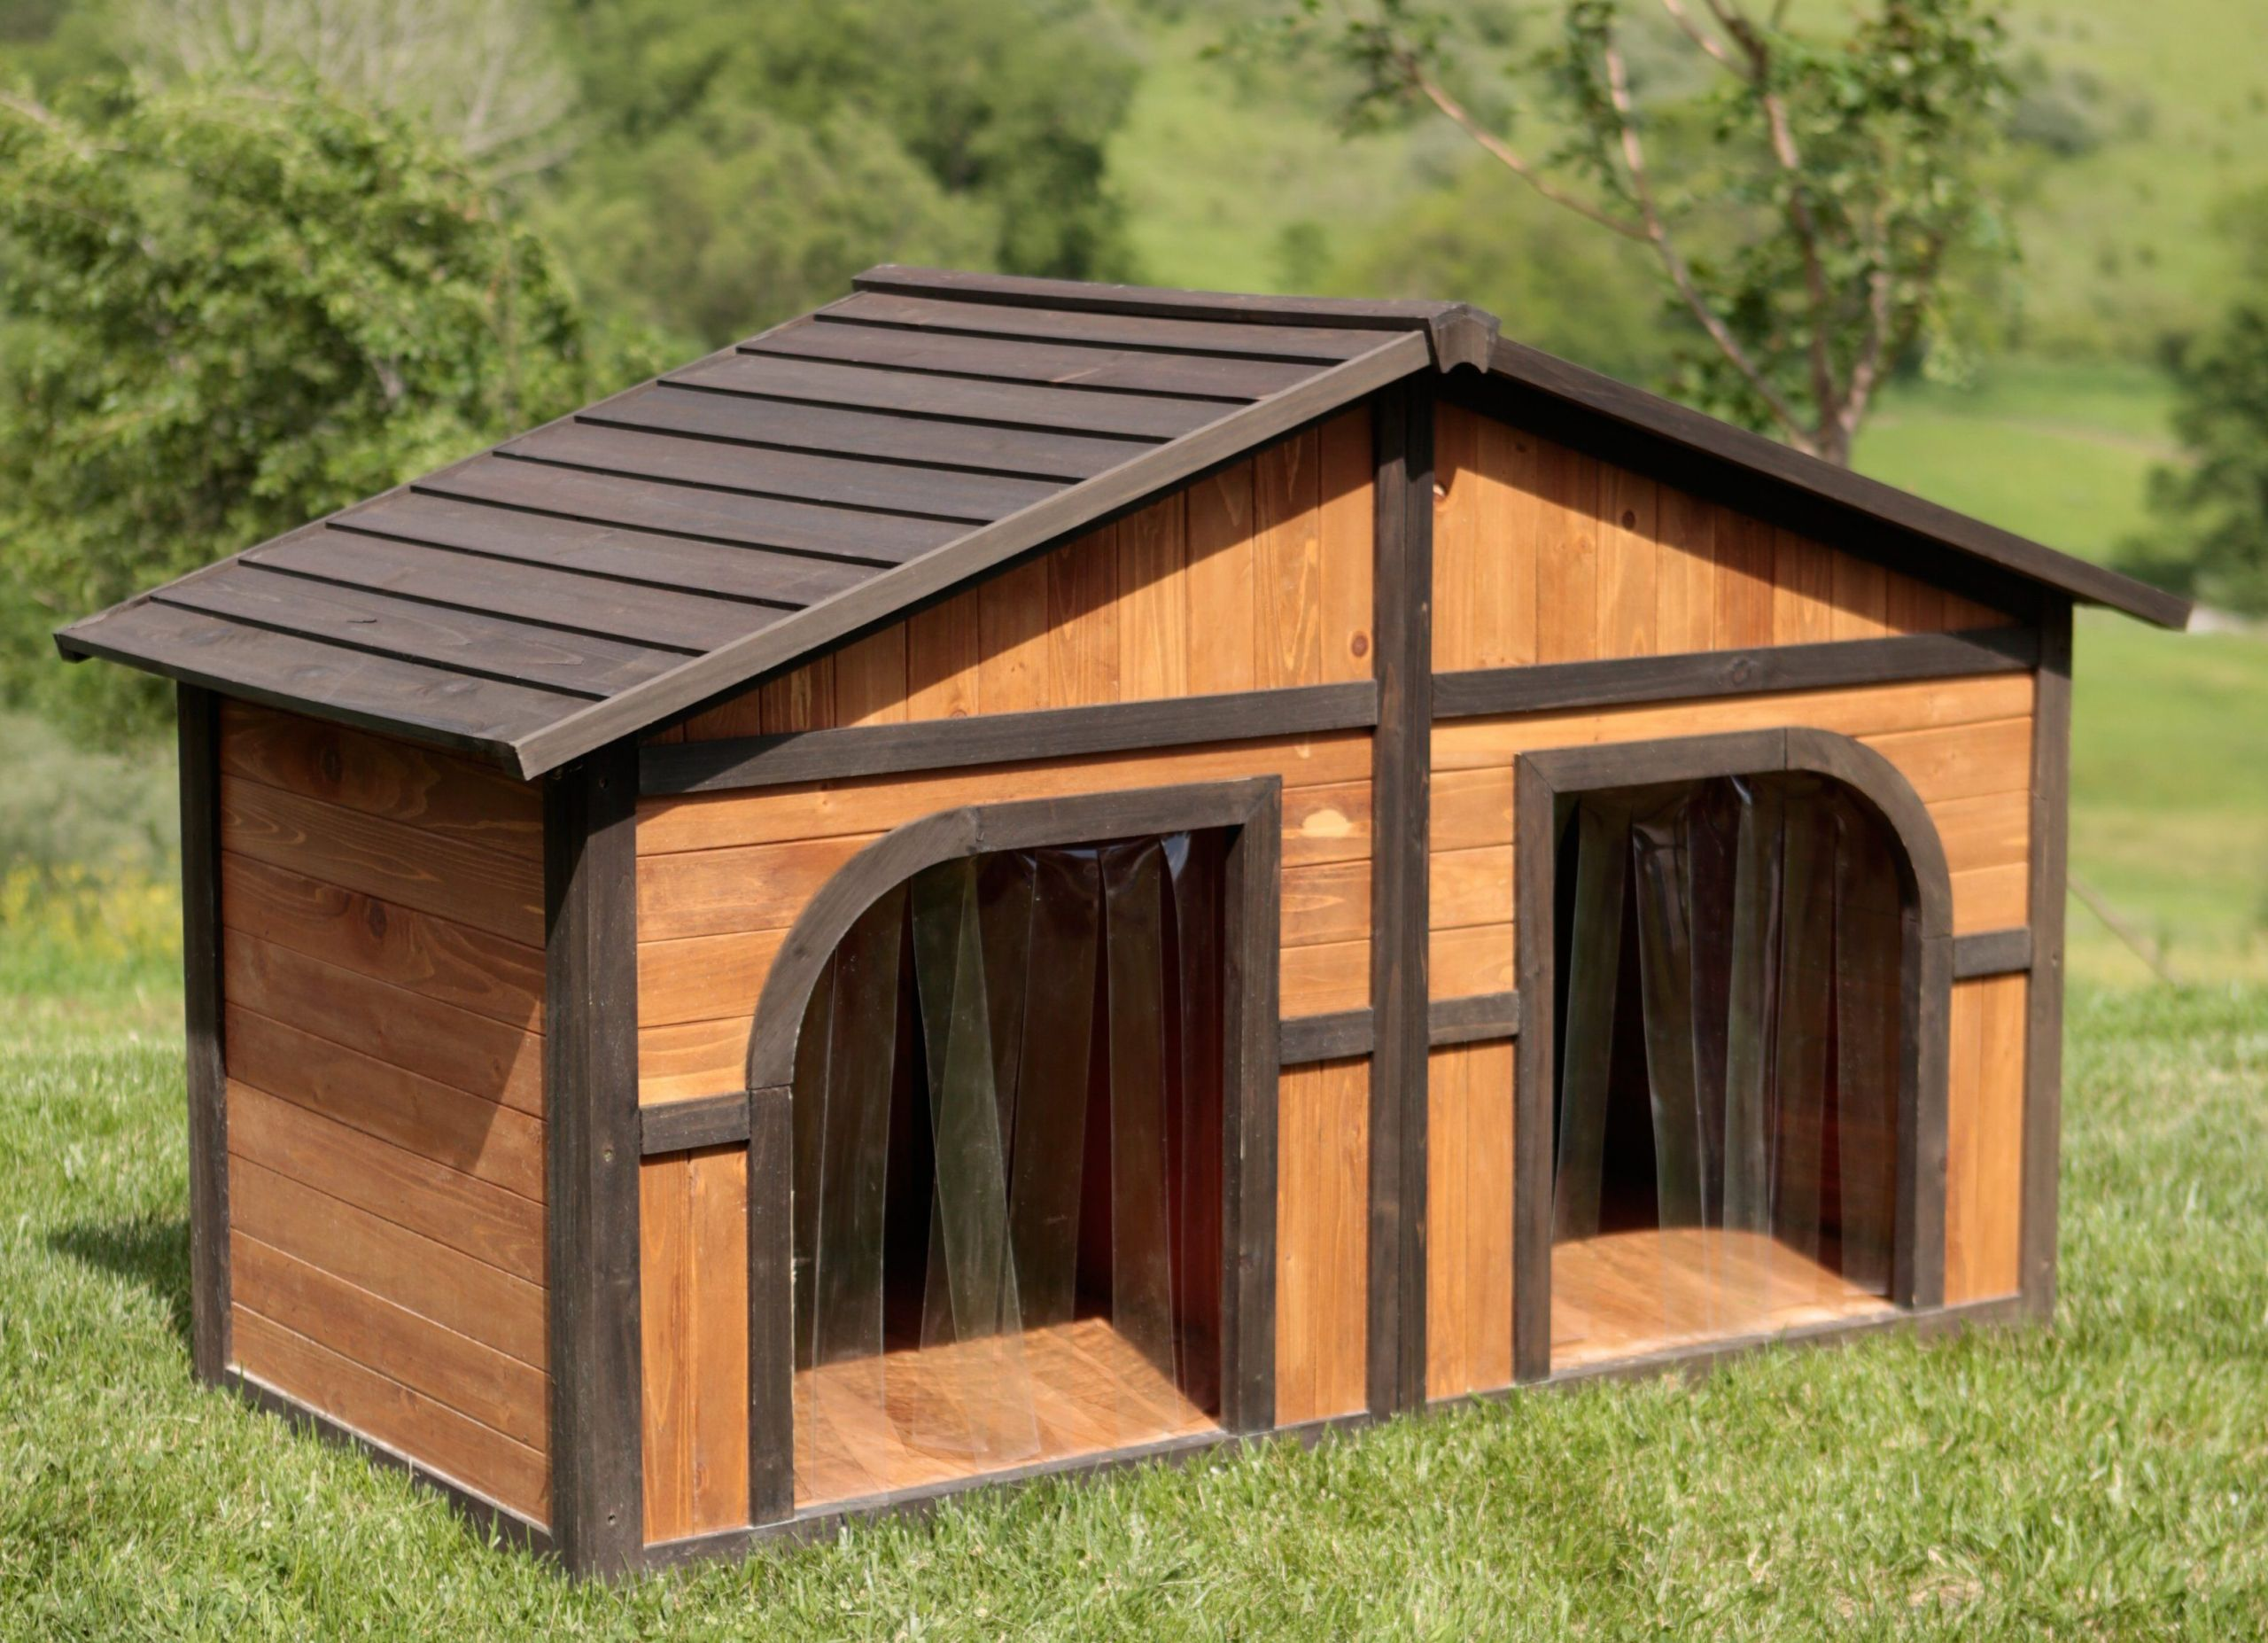 DIY Large Dog House  10 Simple But Beautiful DIY Dog House Designs That You Can